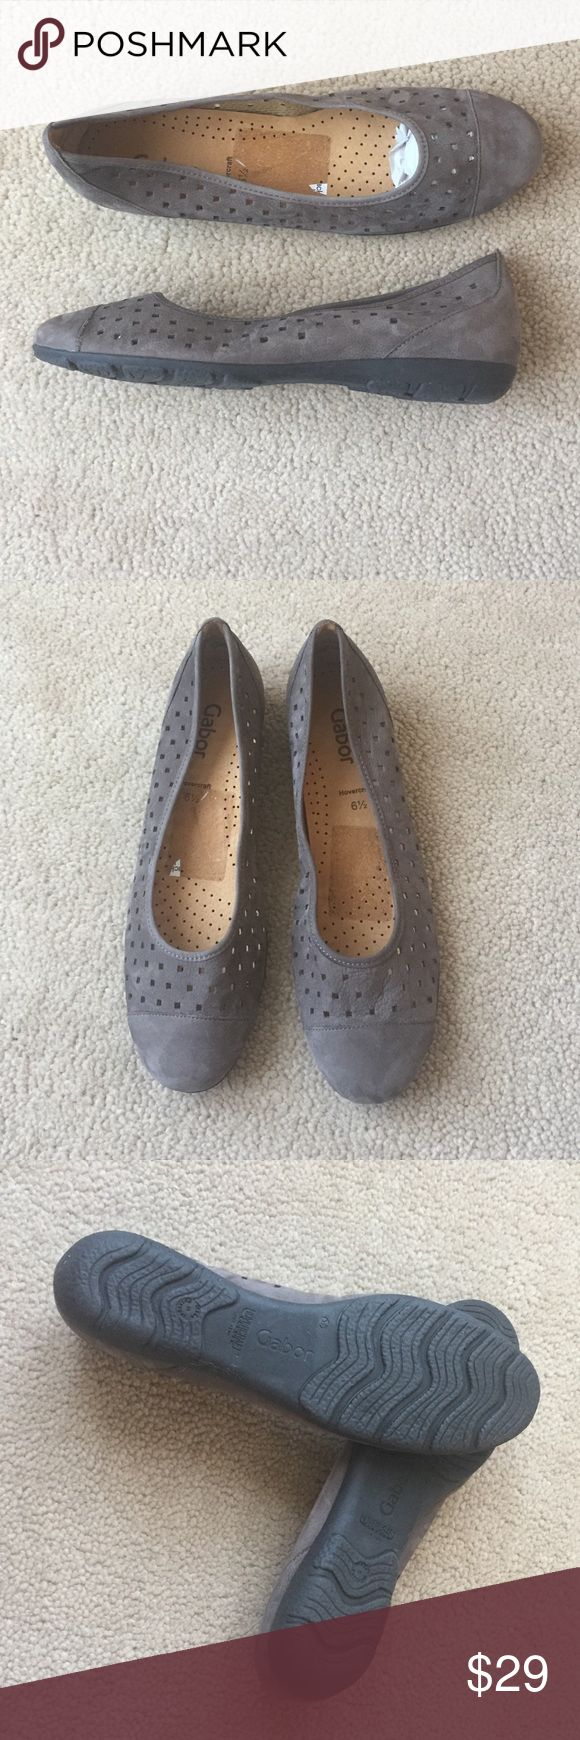 Gabor leather ballet flats women's 9 grey suede Gabor leather ballet flats women's 9 grey suede , U.K. Size 6.5, brand new, super comfortable shoes, taupe grey colour, made in Portugal  gabor Shoes Flats & Loafers